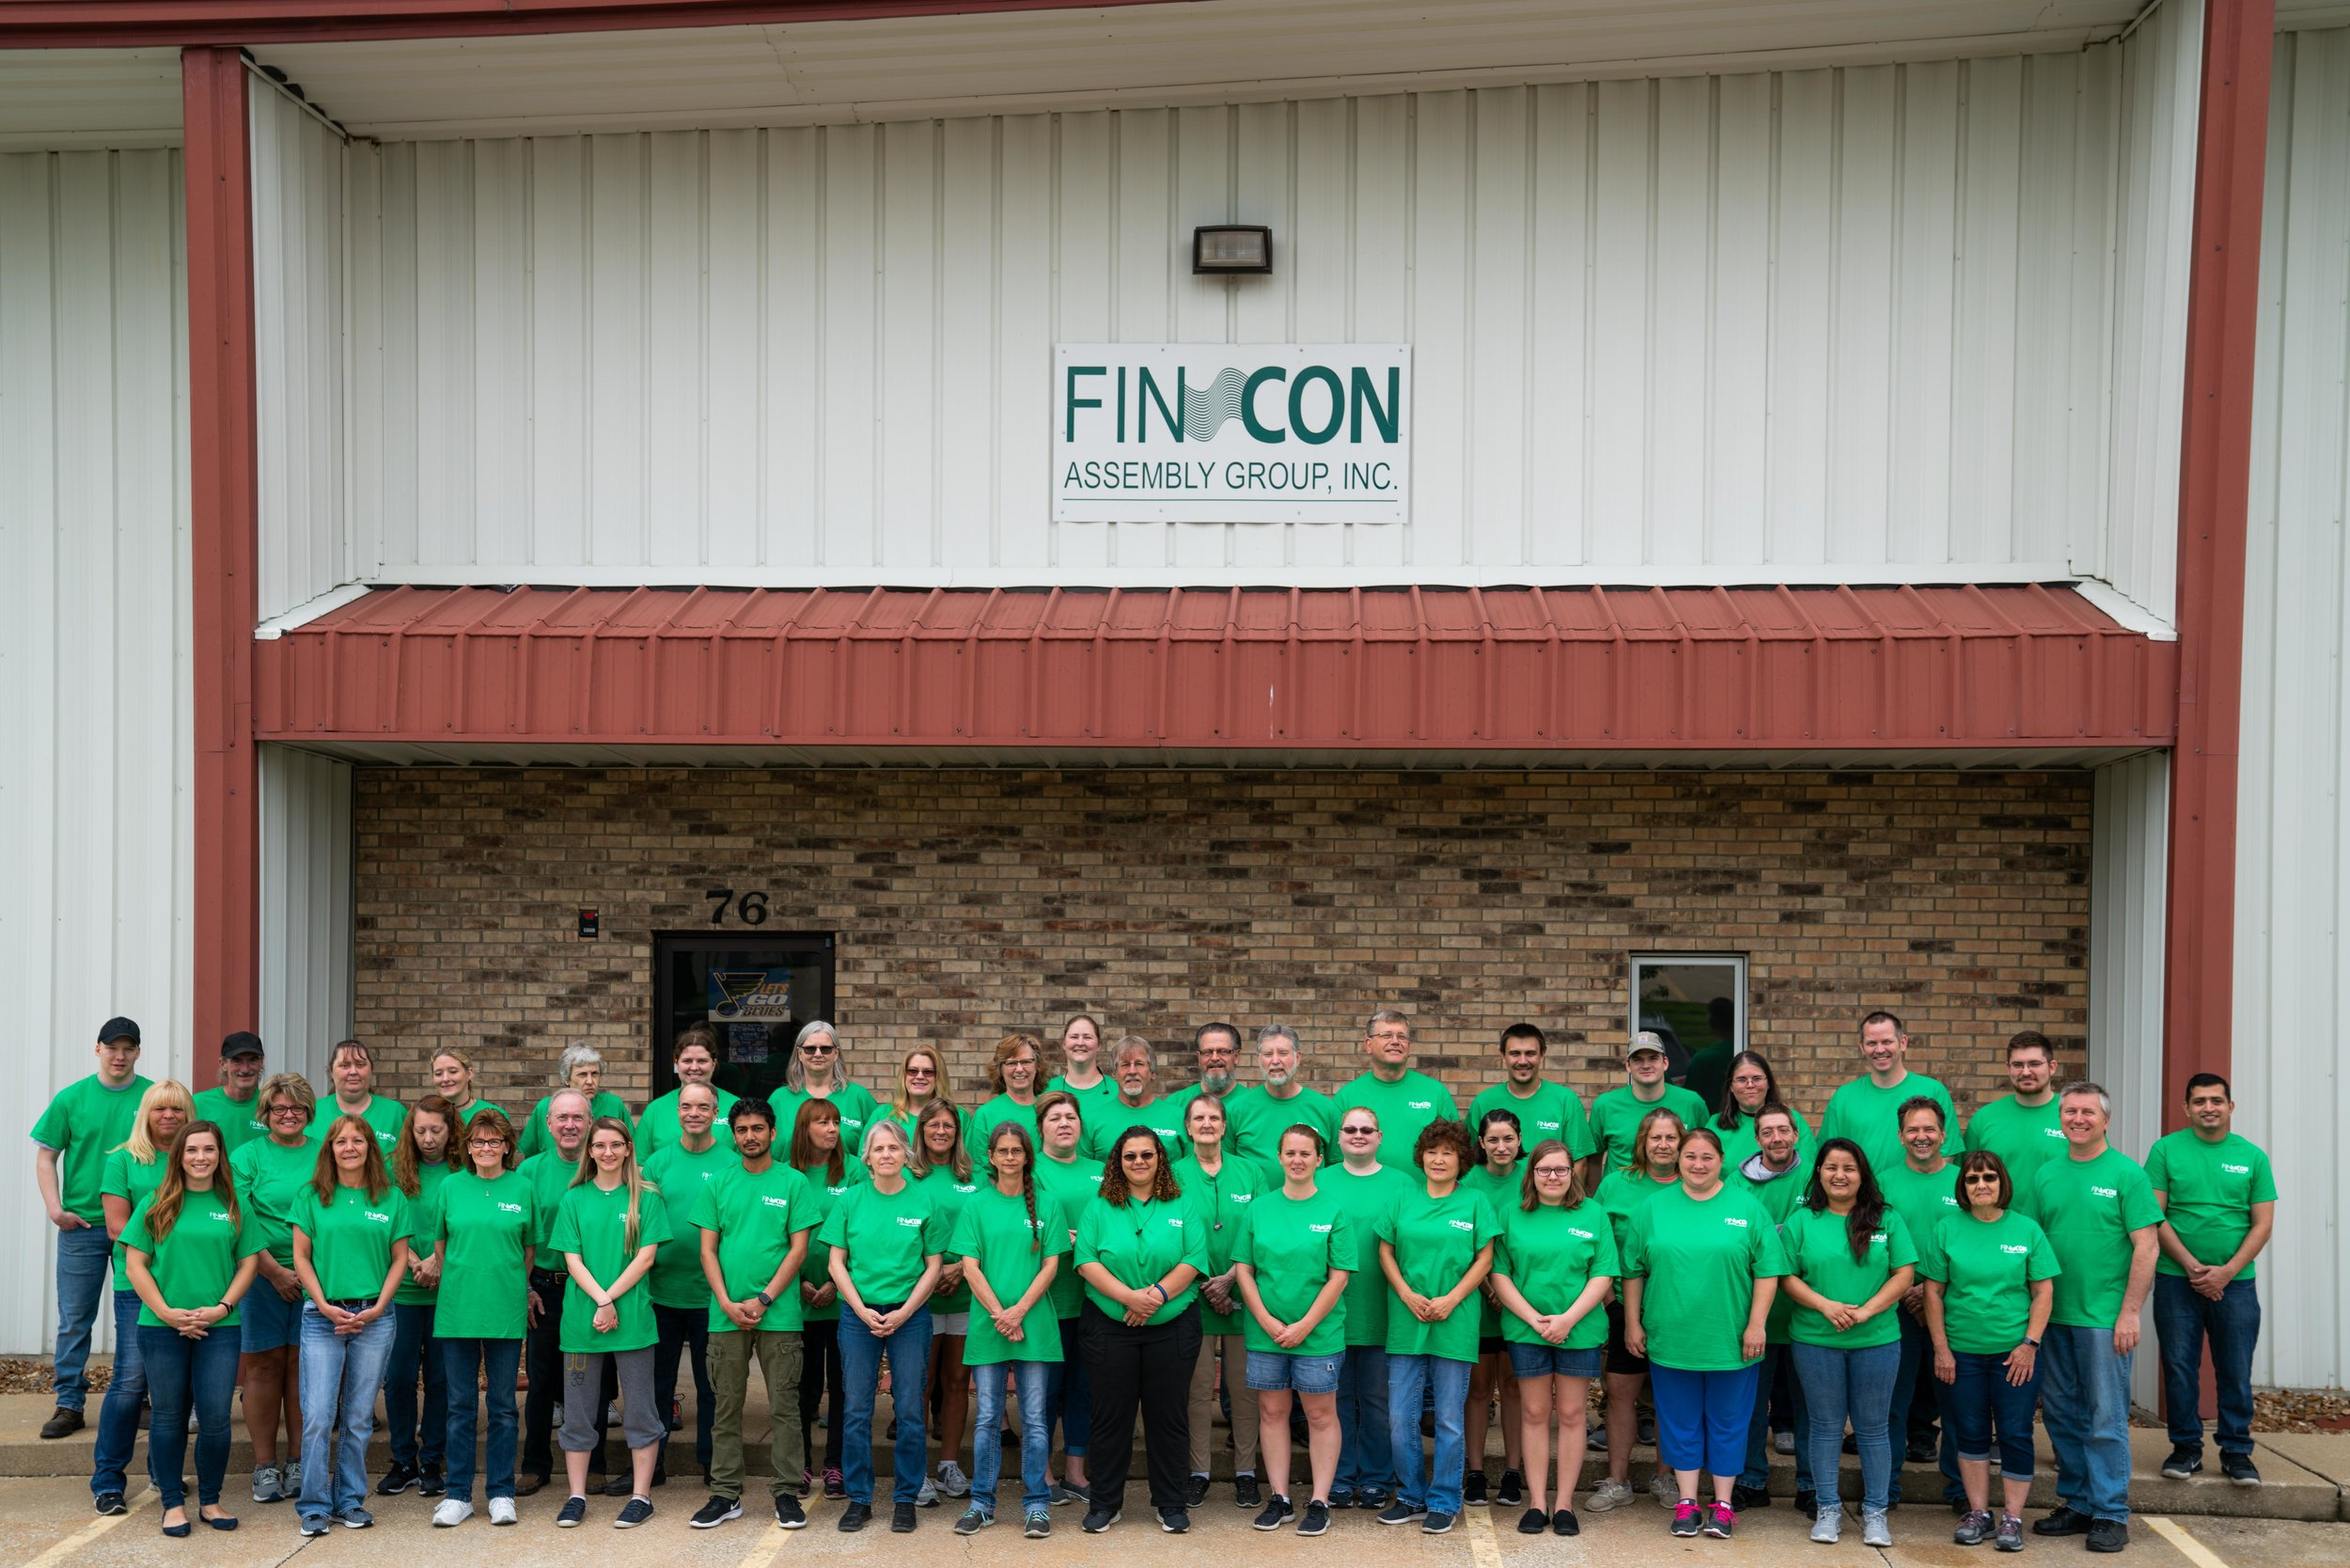 05.23.19 - Fin-Con Assembly Group_Edited_Color_ Compressed File Sizes_022.jpg